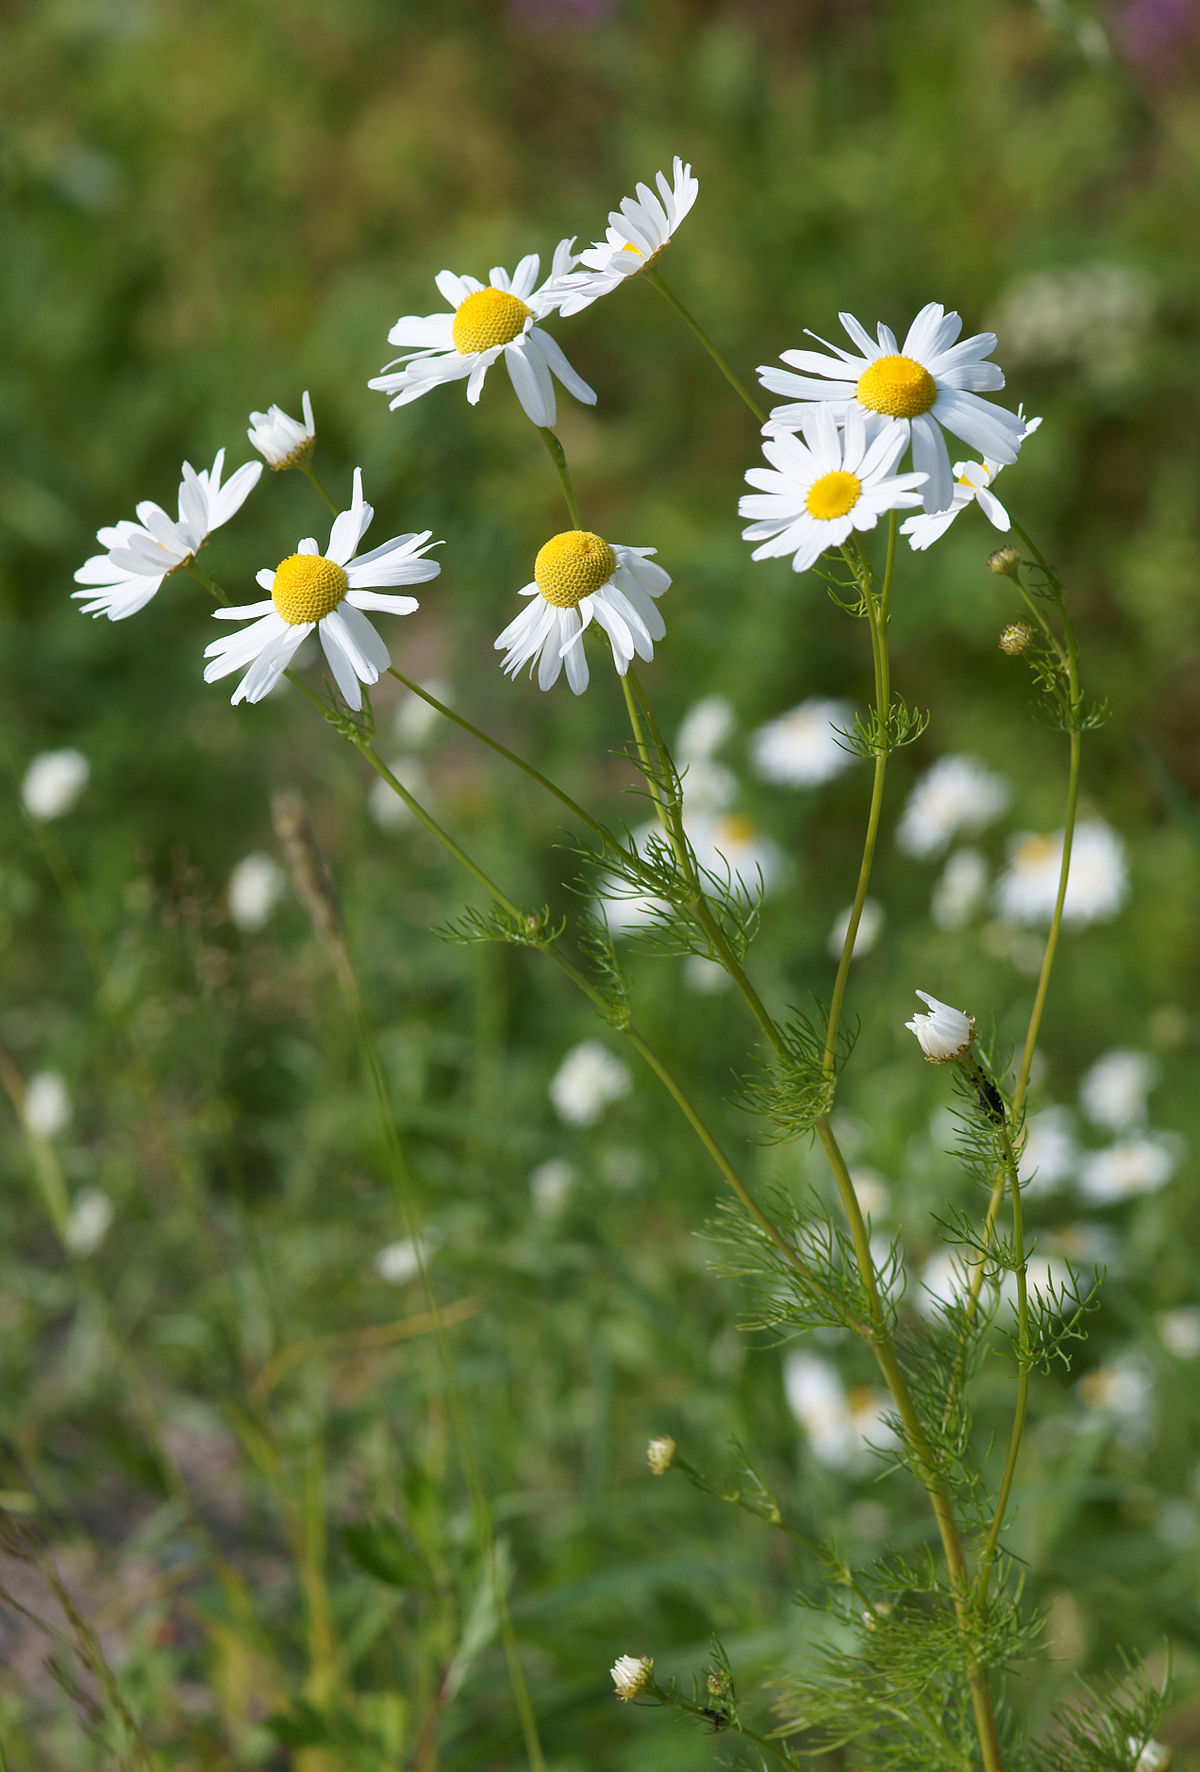 Chamomile wikipedia Where did daisies originate